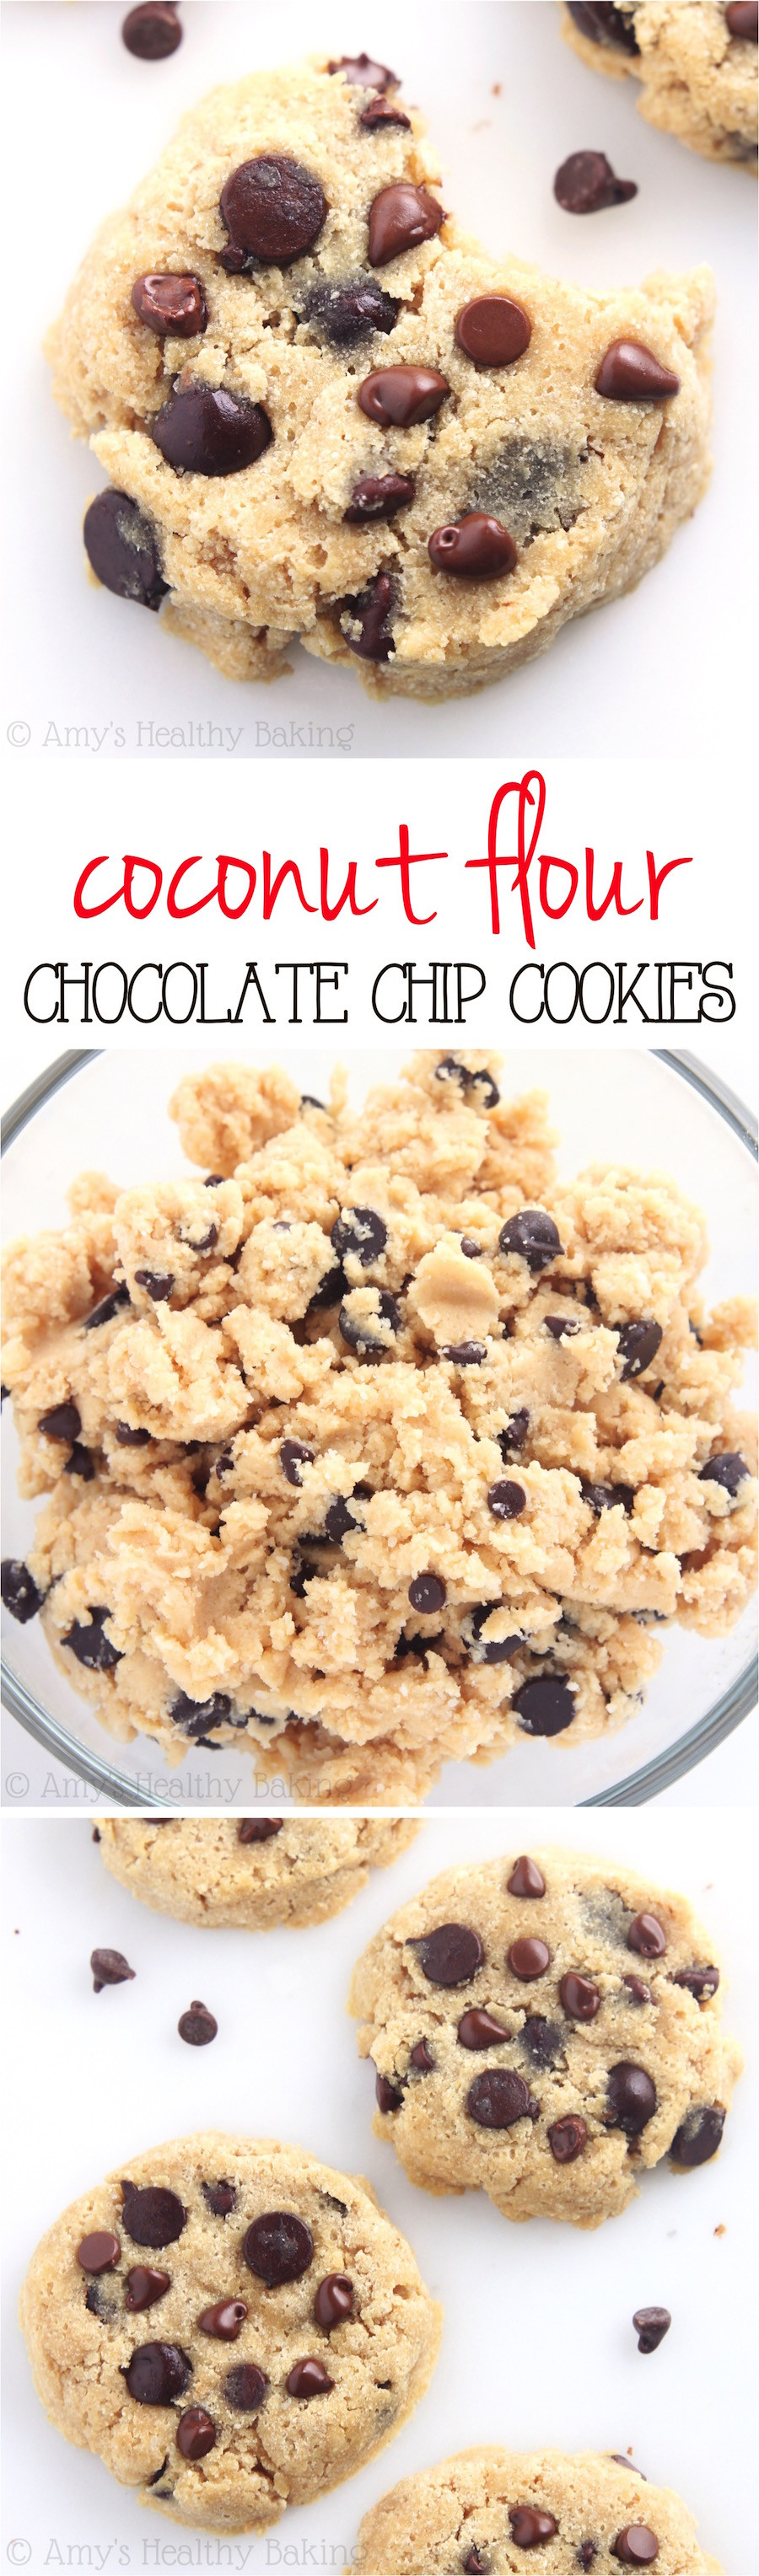 Healthy Chocolate Chip Cookies  keto chocolate chip cookies coconut flour